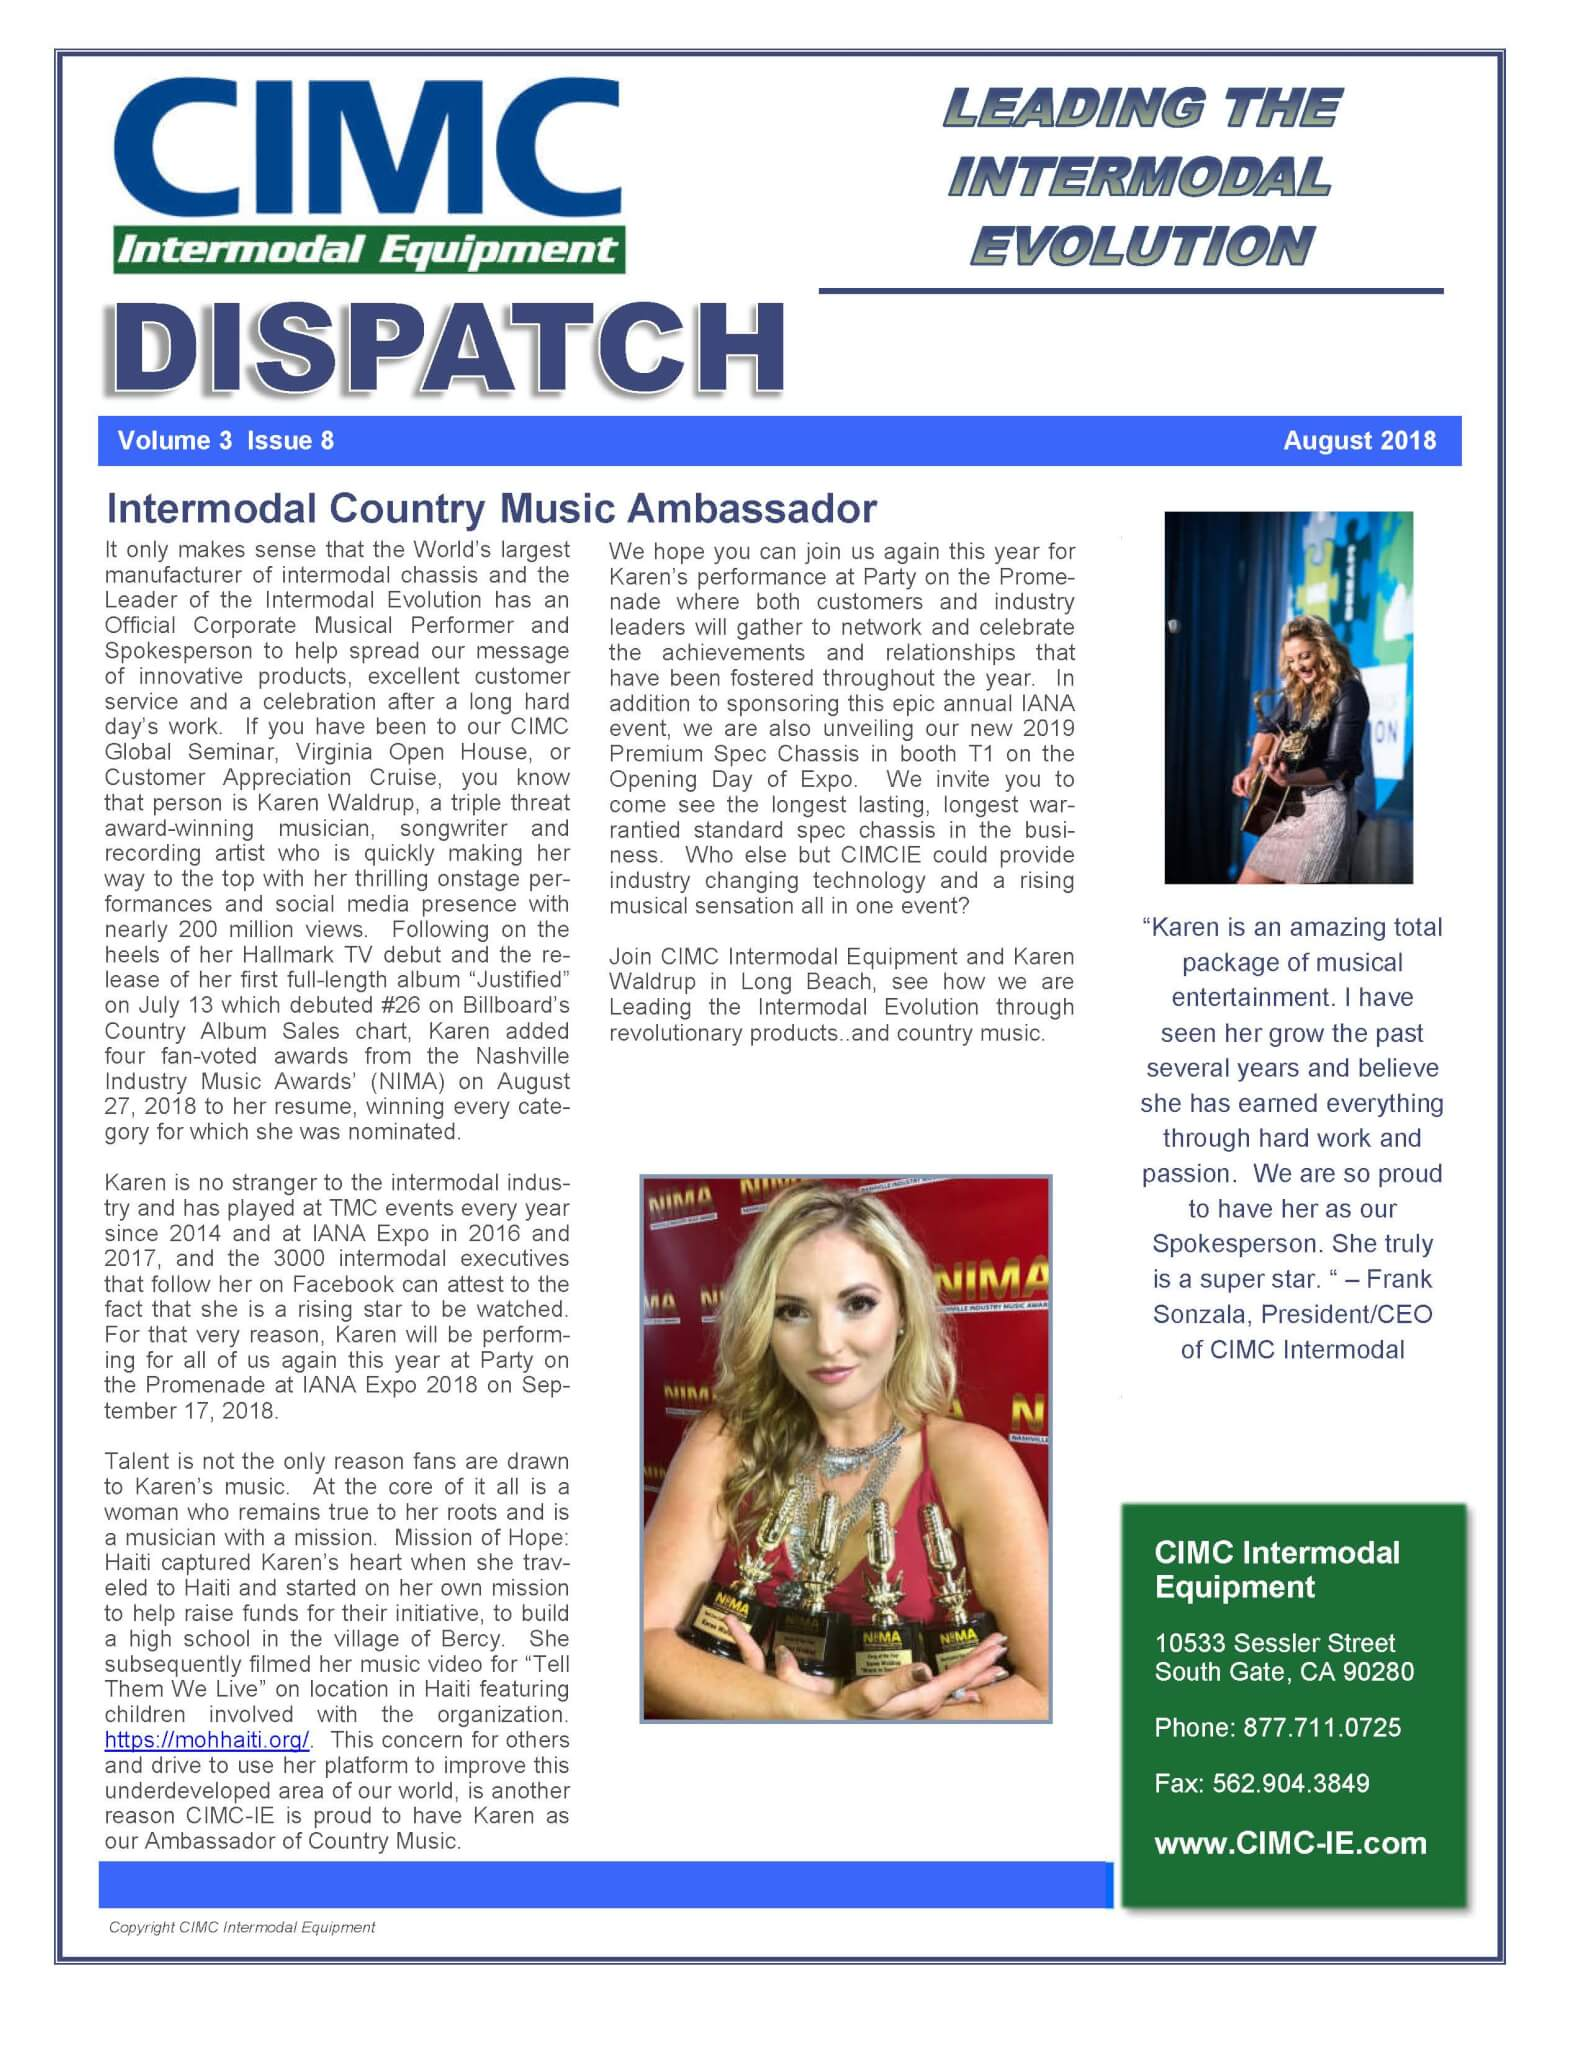 CIMC Dispatch August 2018